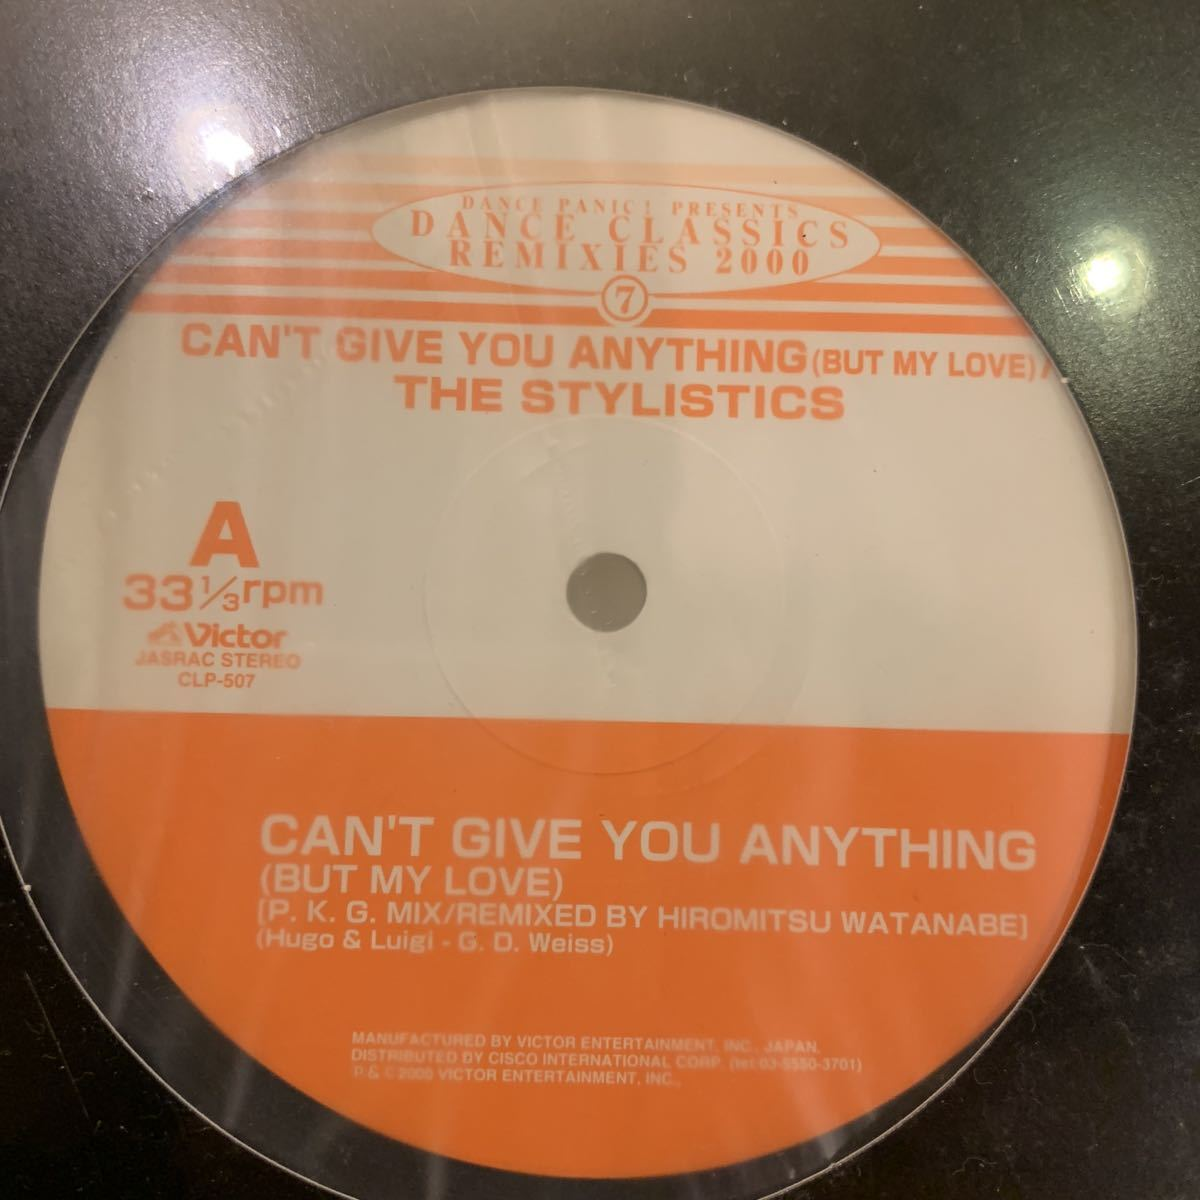 THE STYLISTICS / CAN'T GIVE YOU ANYTHING (BUT MY LOVE) 中古レコード_画像1